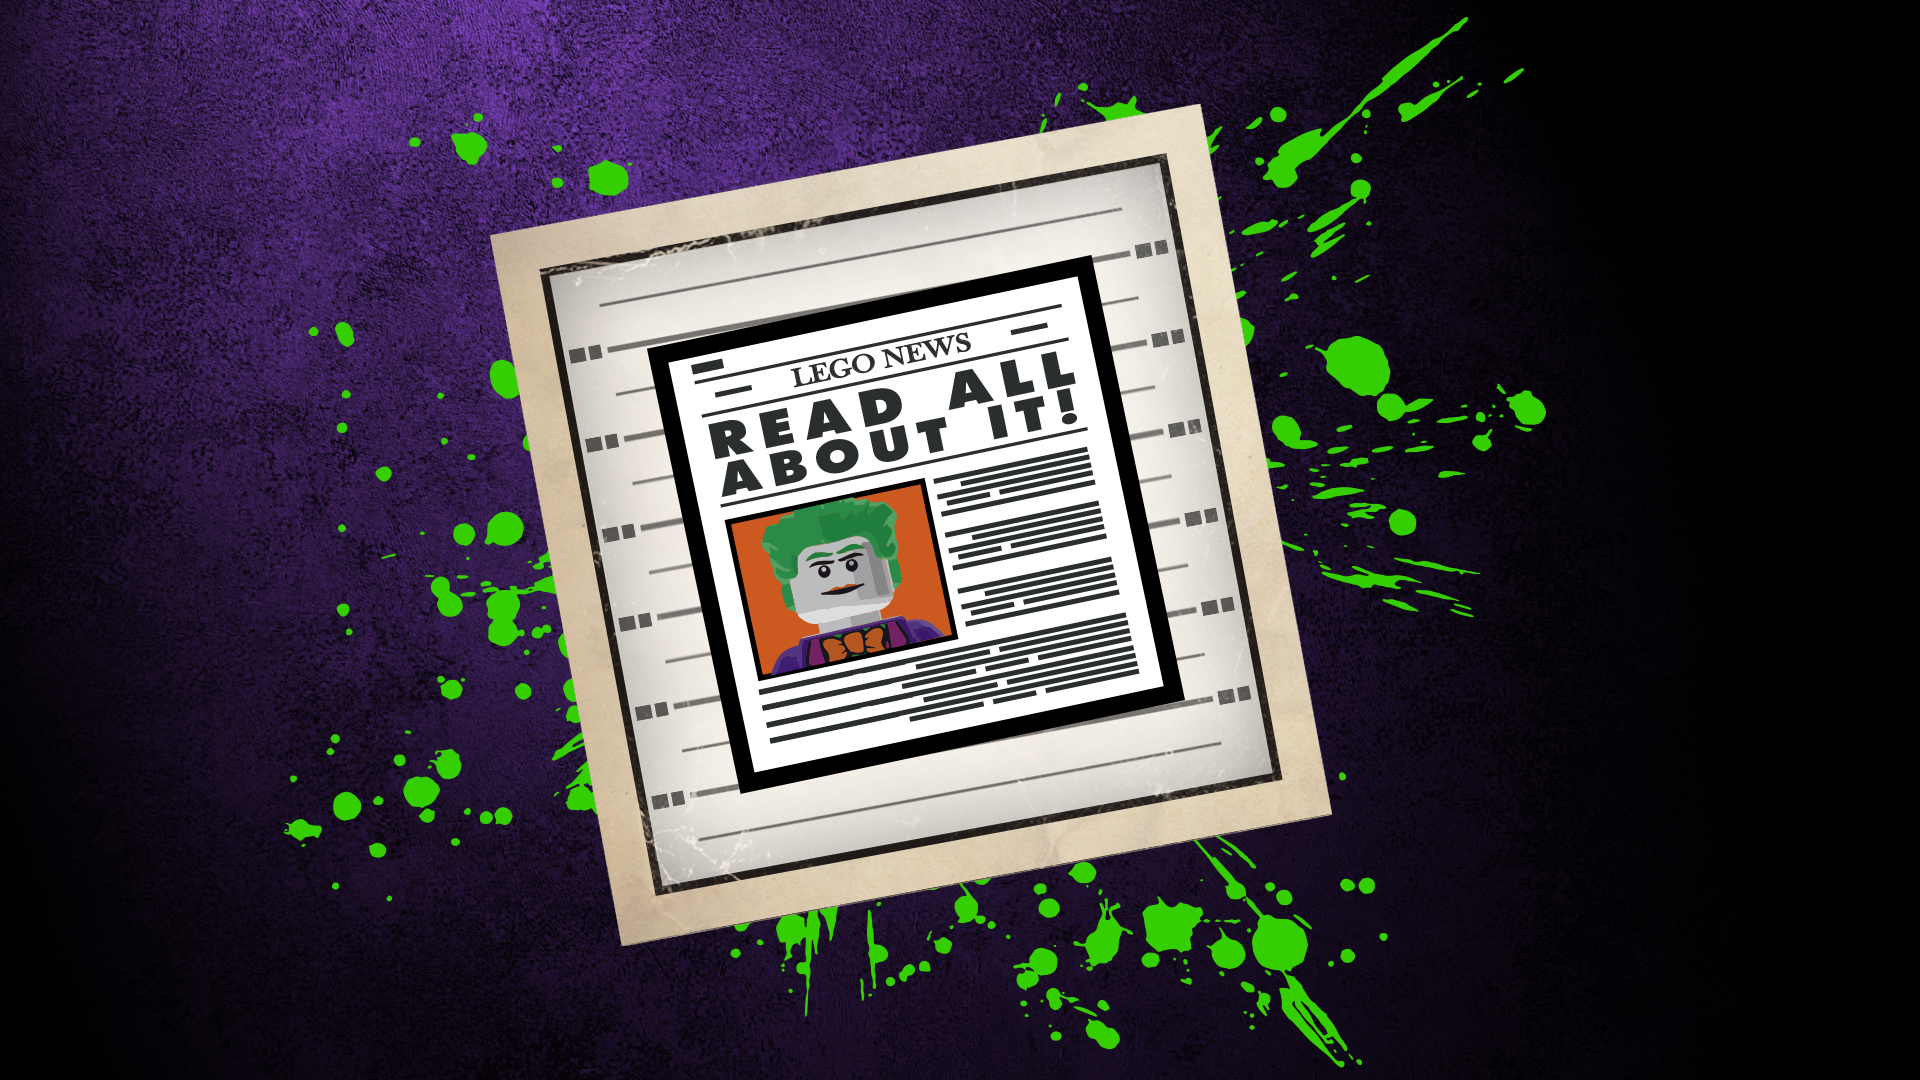 Icon for Read All About It